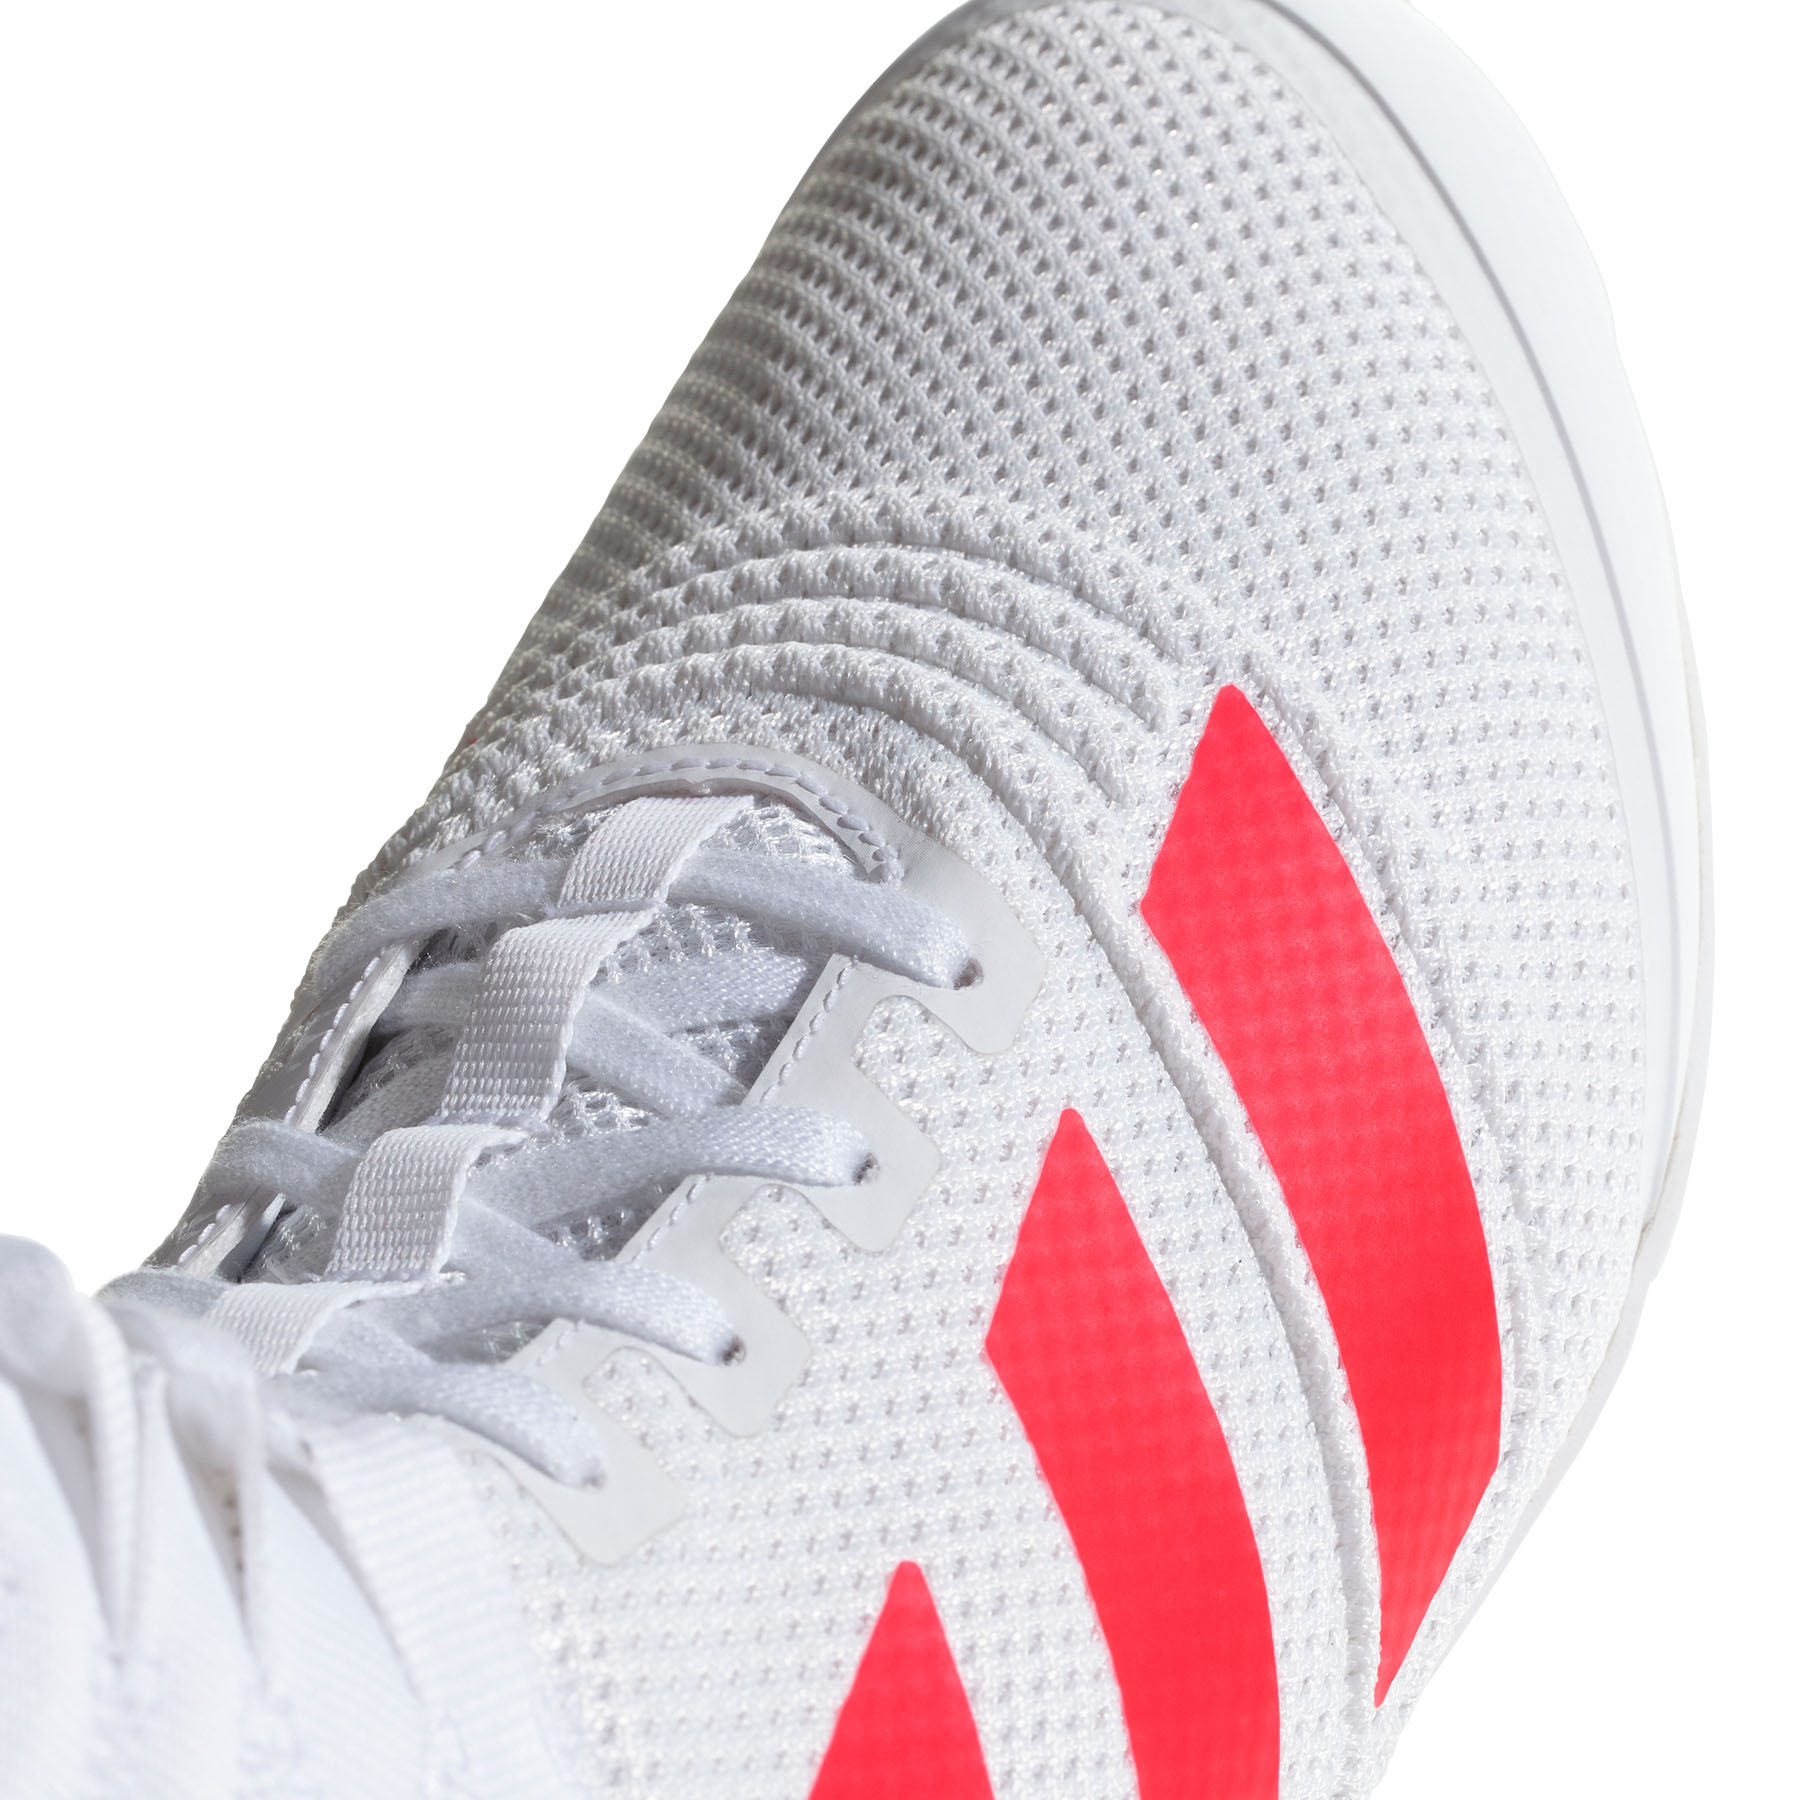 outlet store 66e18 402a5 Adidas Speedex 18 Mens adultes Boxing Trainer chaussure botte blanc rouge